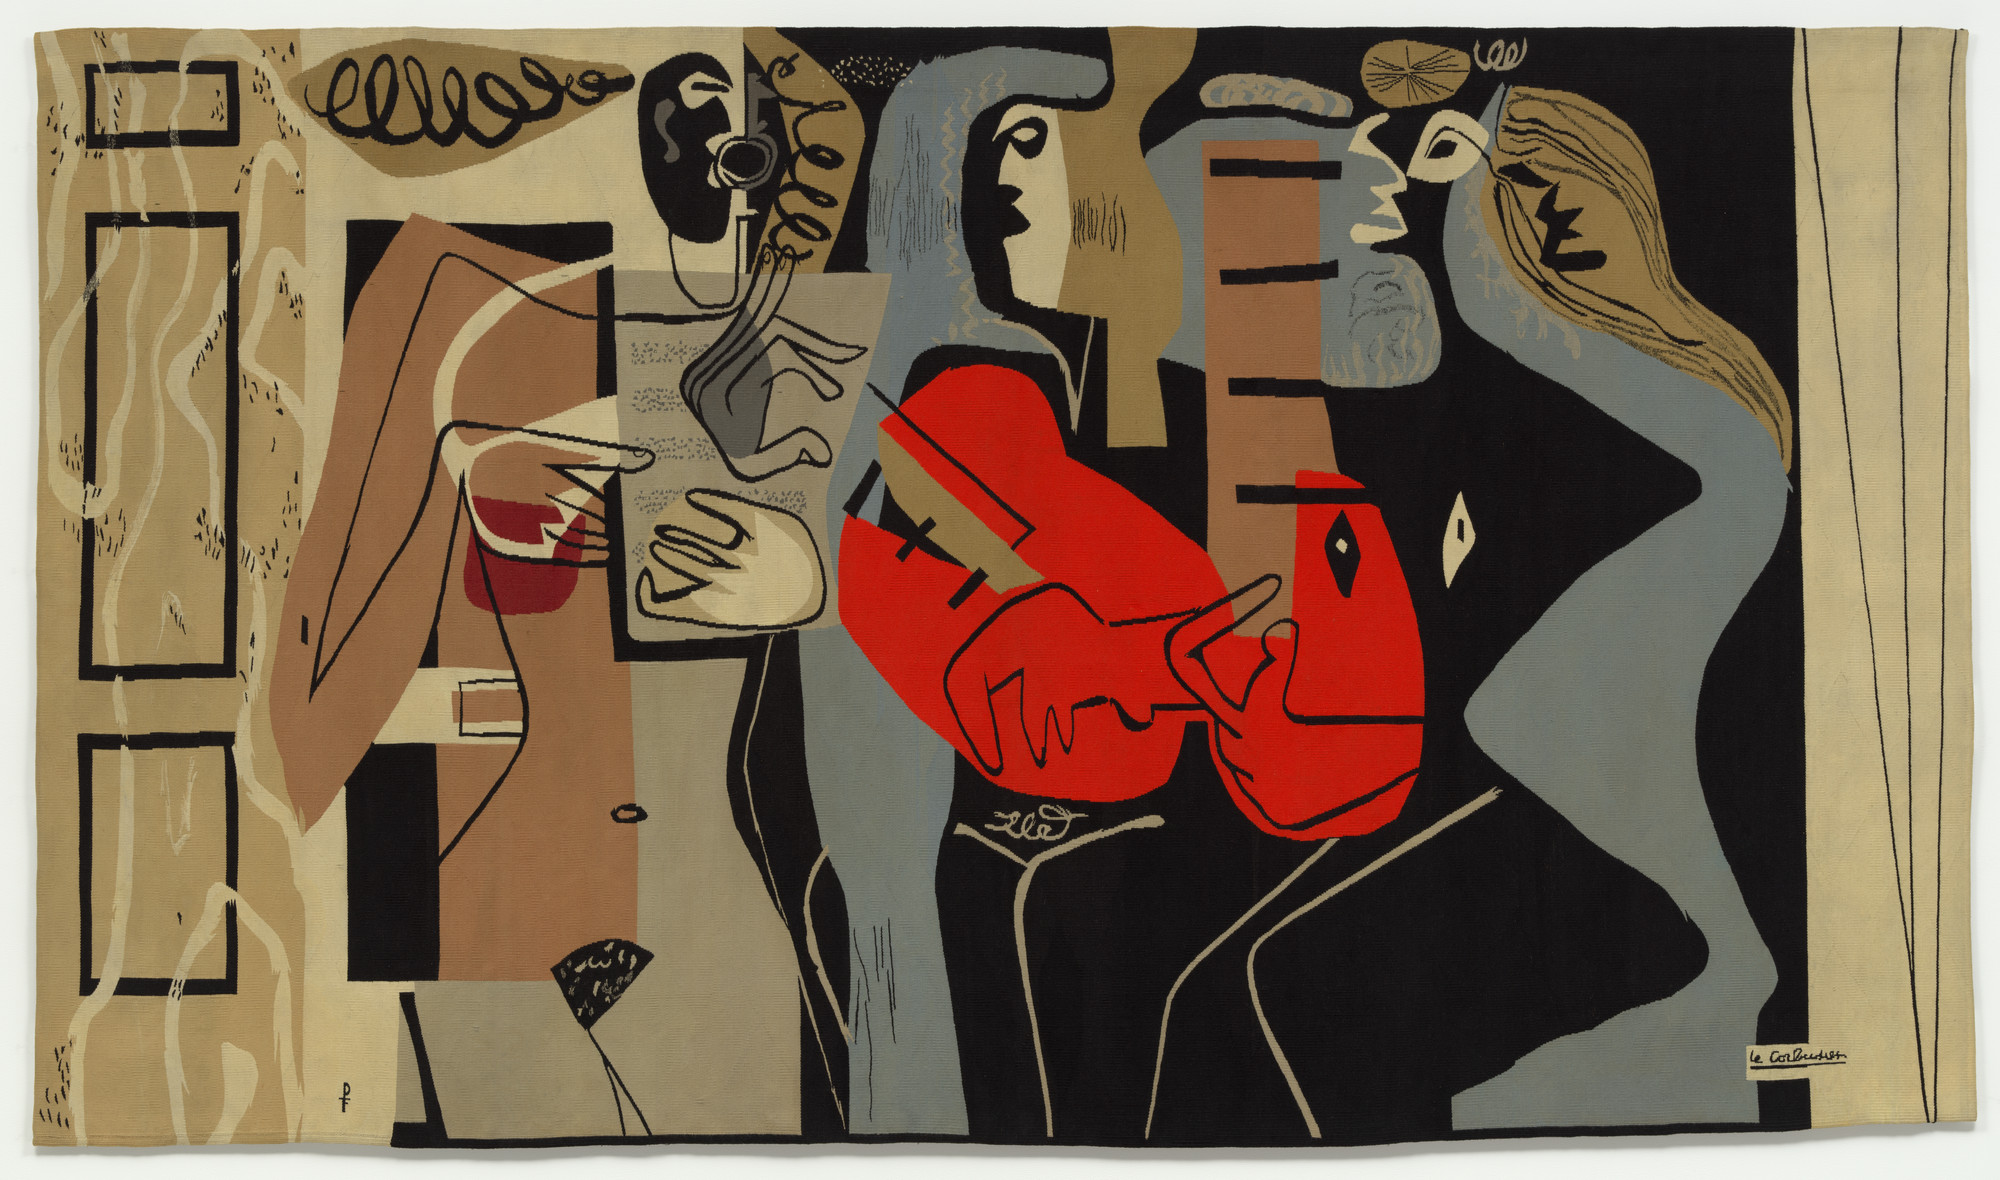 Le Corbusier (Charles-Édouard Jeanneret). Muralnomad Tapestry 'Les Musiciennes'. 1953